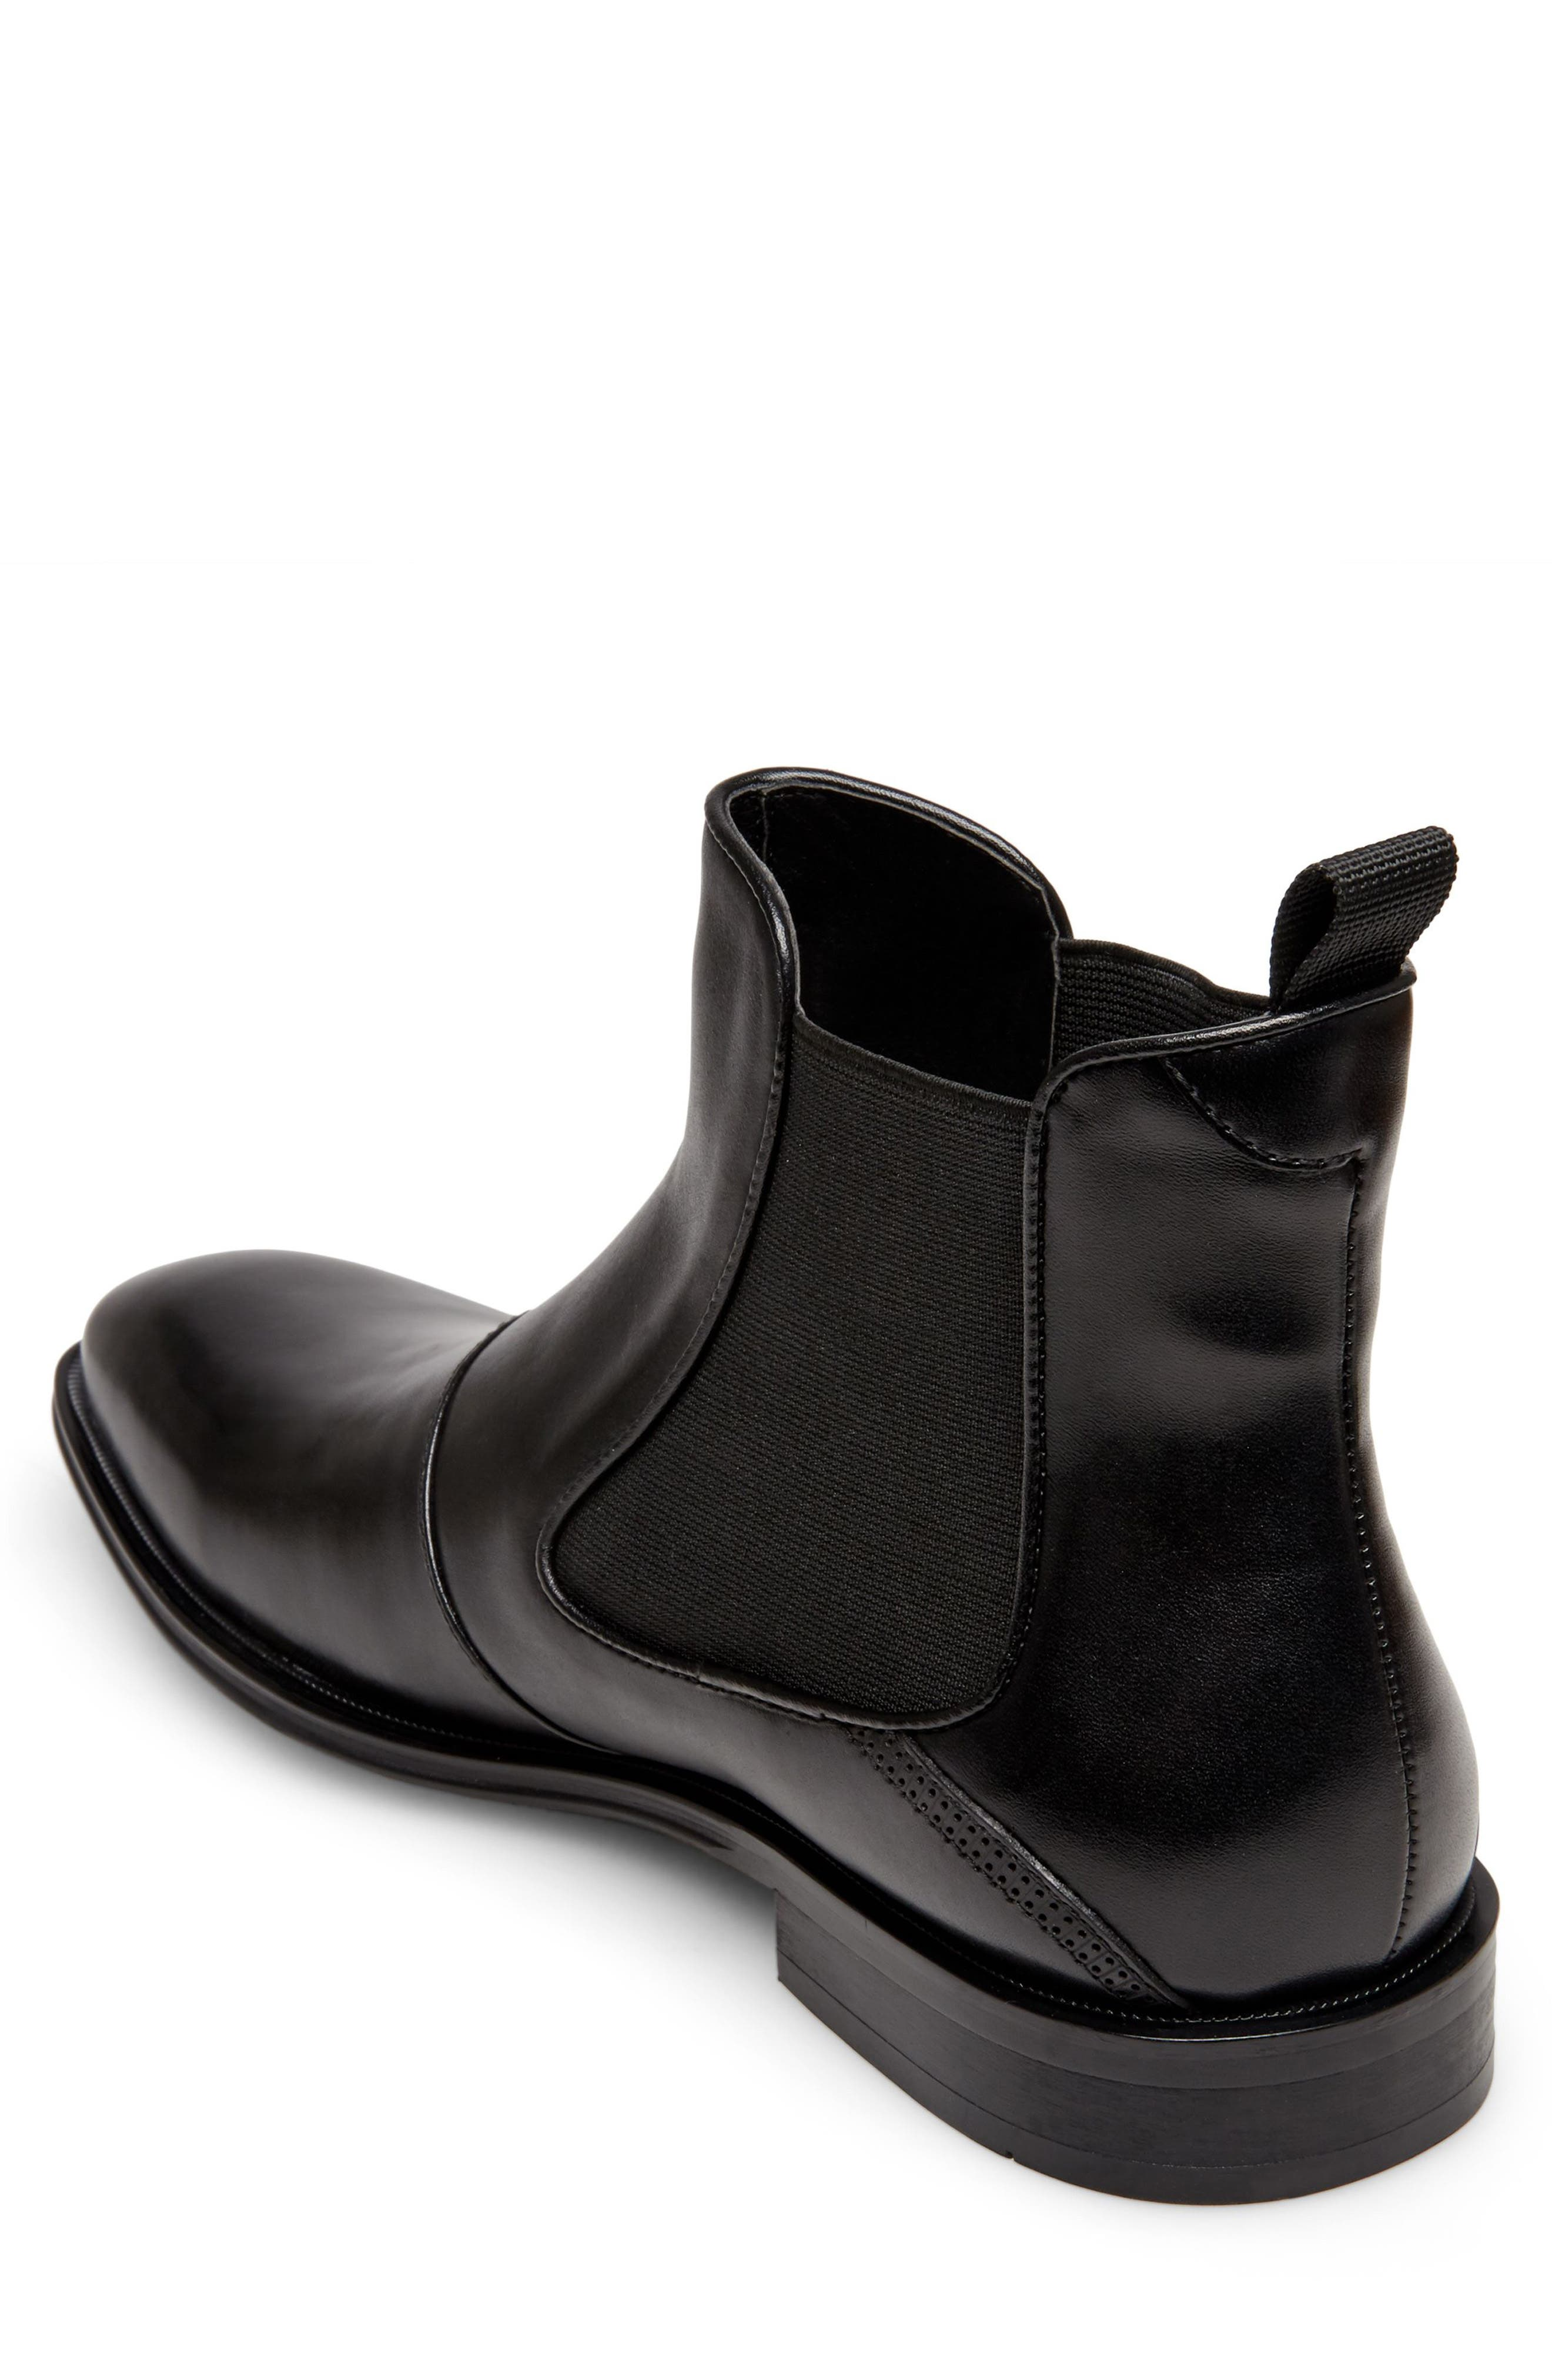 Malice Chelsea Boot,                             Alternate thumbnail 2, color,                             BLACK LEATHER